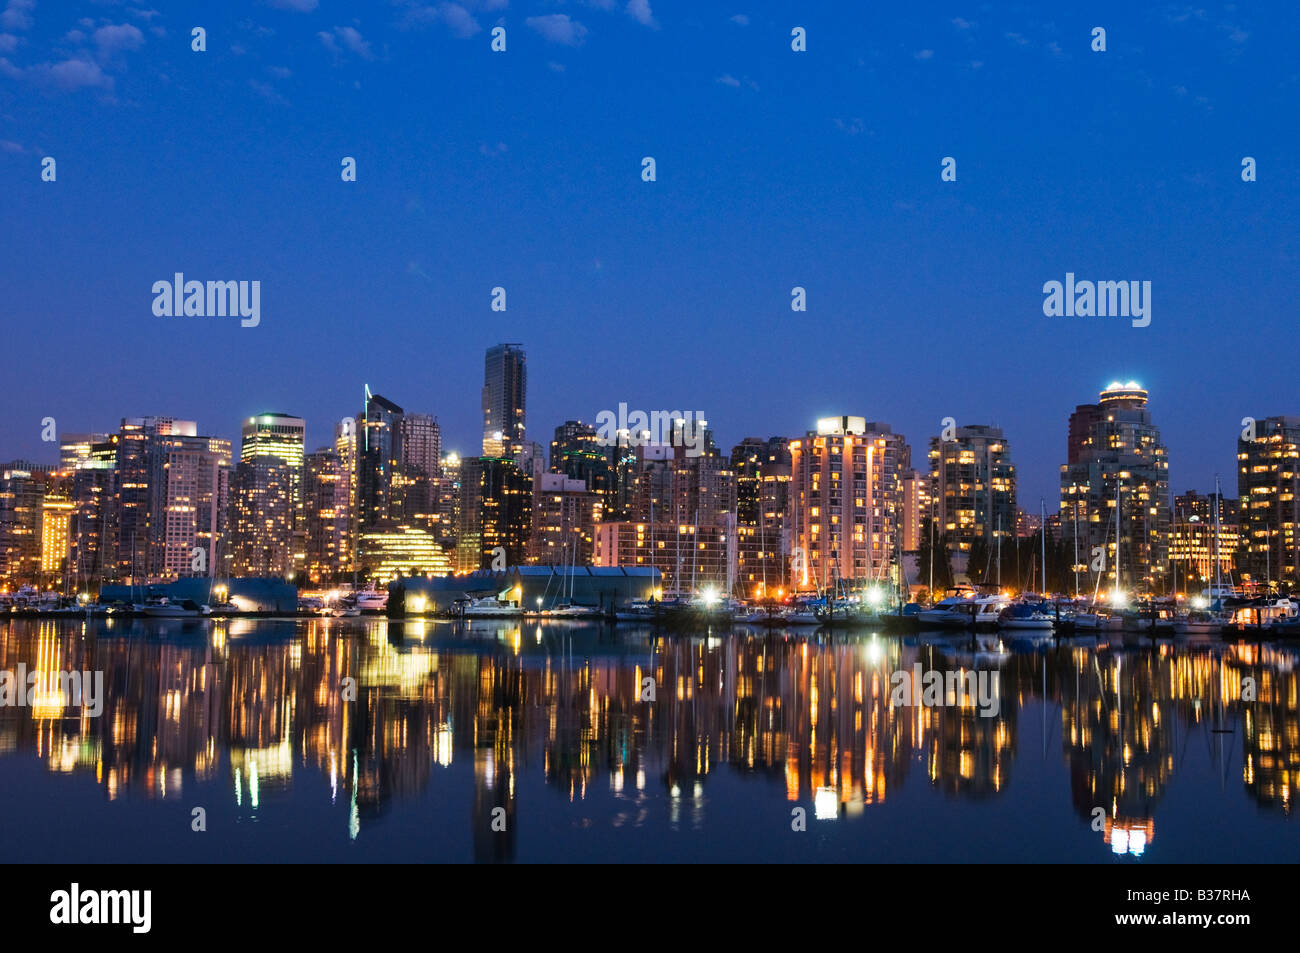 Soirée skyline Coal Harbour Vancouver Canada Photo Stock